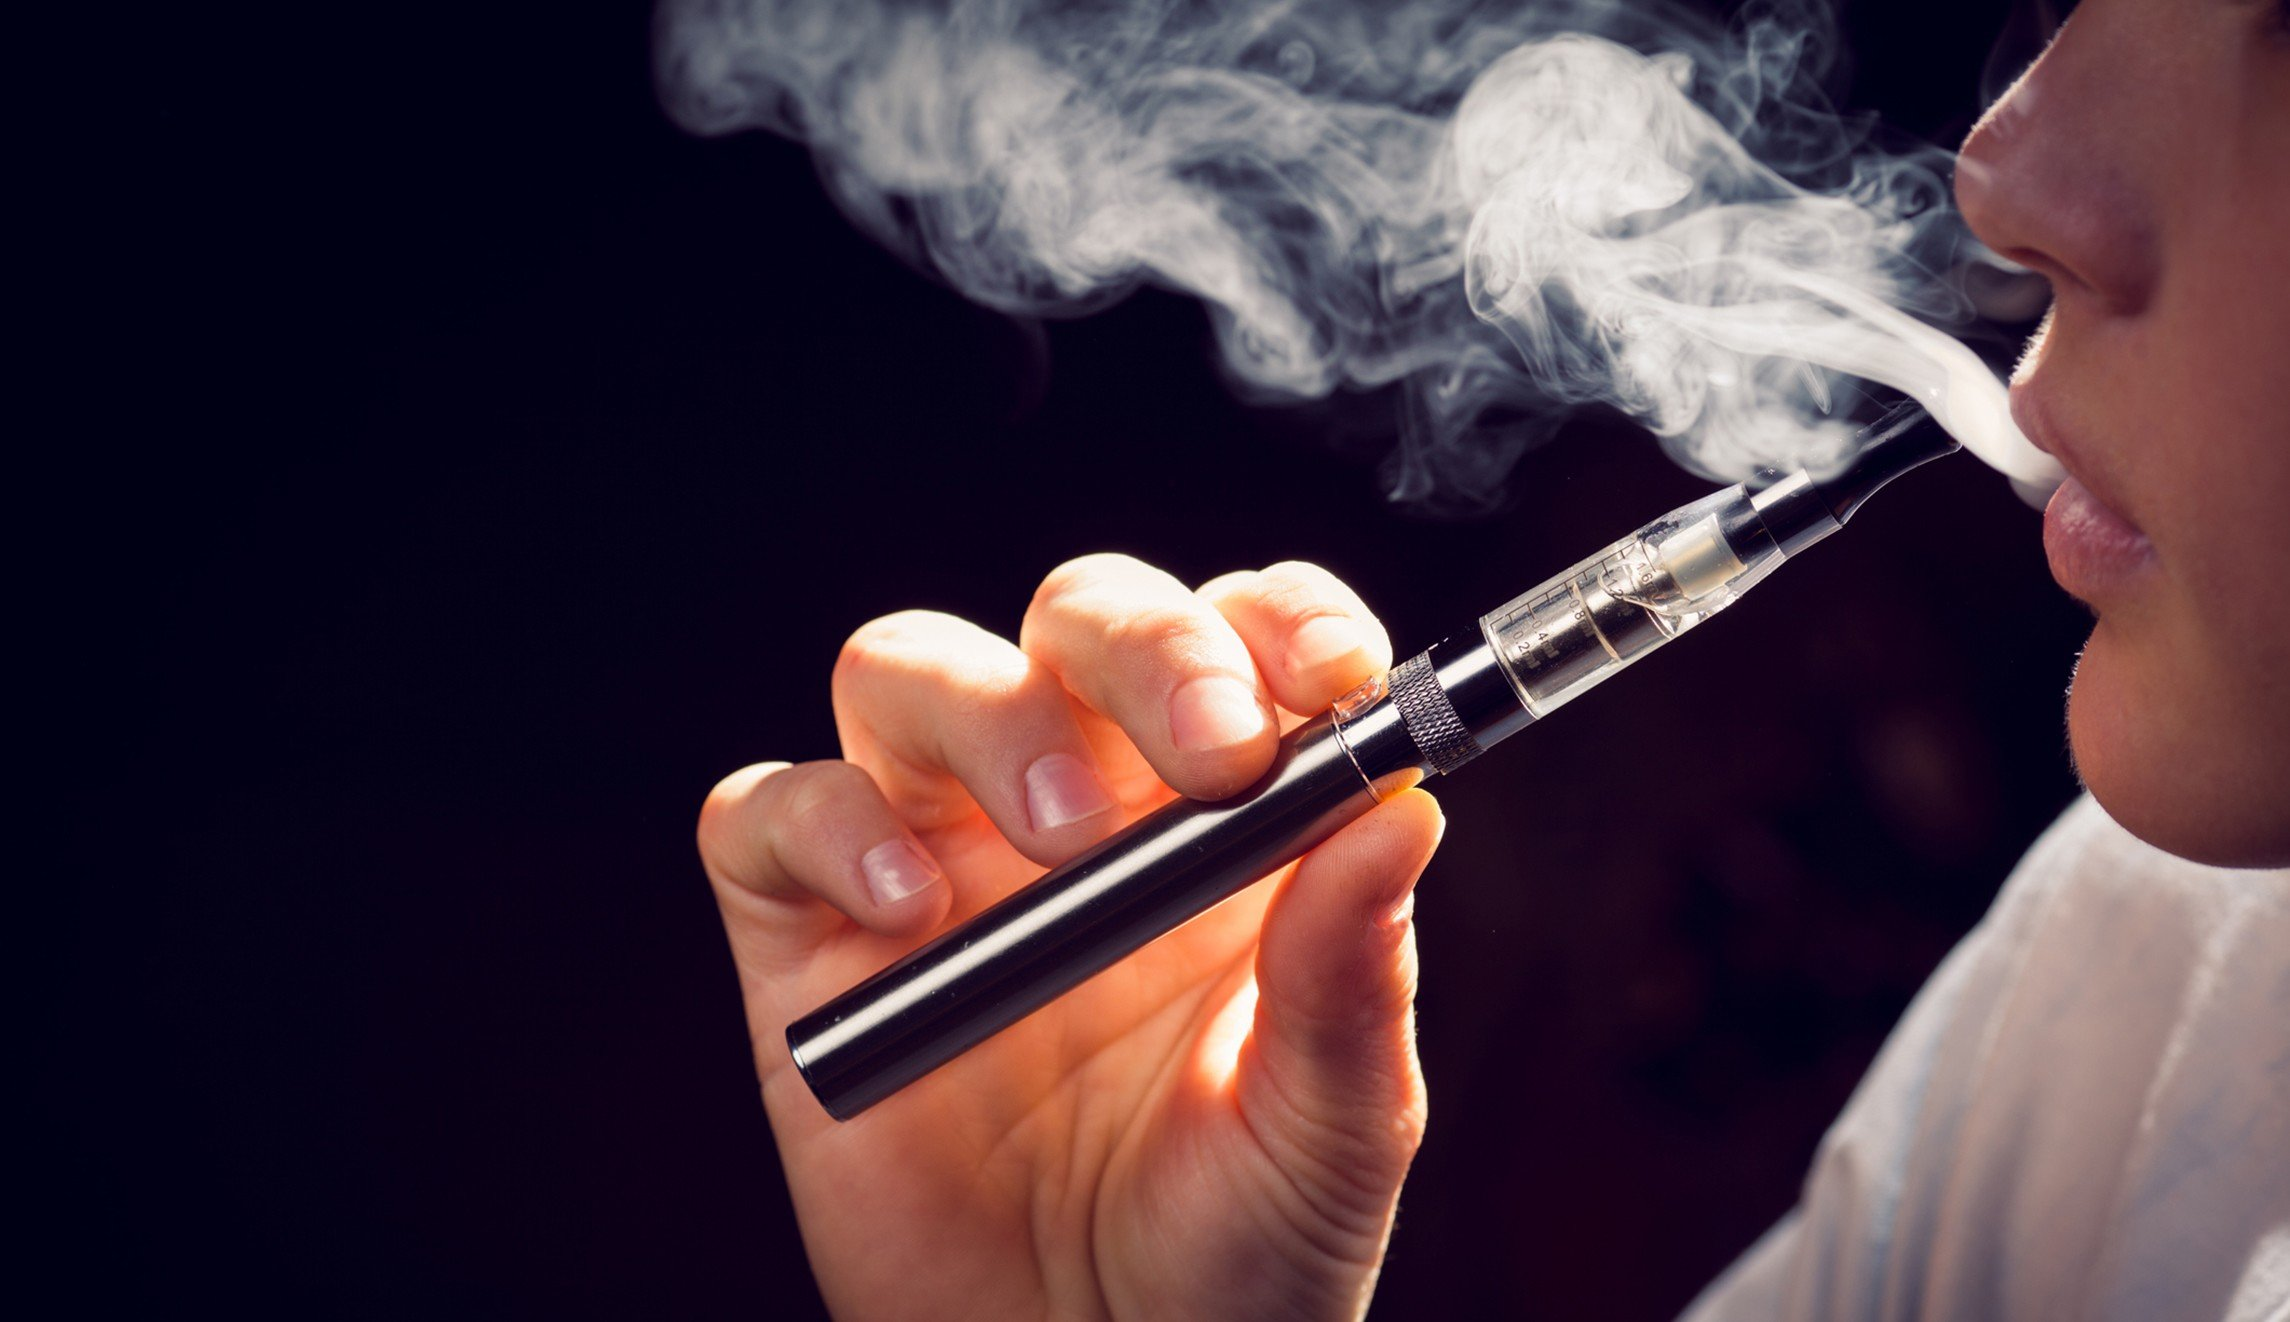 FDA moves to ban flavored e-cigarettes: Here's what we know